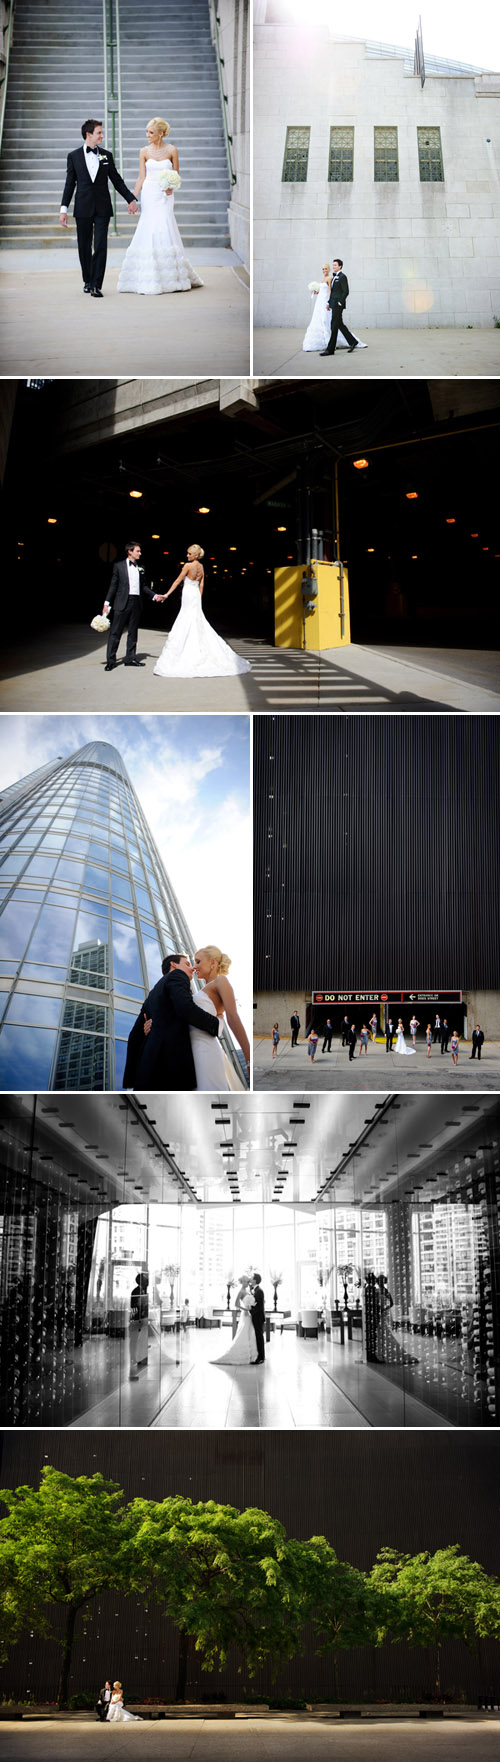 elegant Chicago wedding at Trump Tower, stylish wedding dress and bridal necklace, classic black tuxedo, wedding photos by Nakai Photography